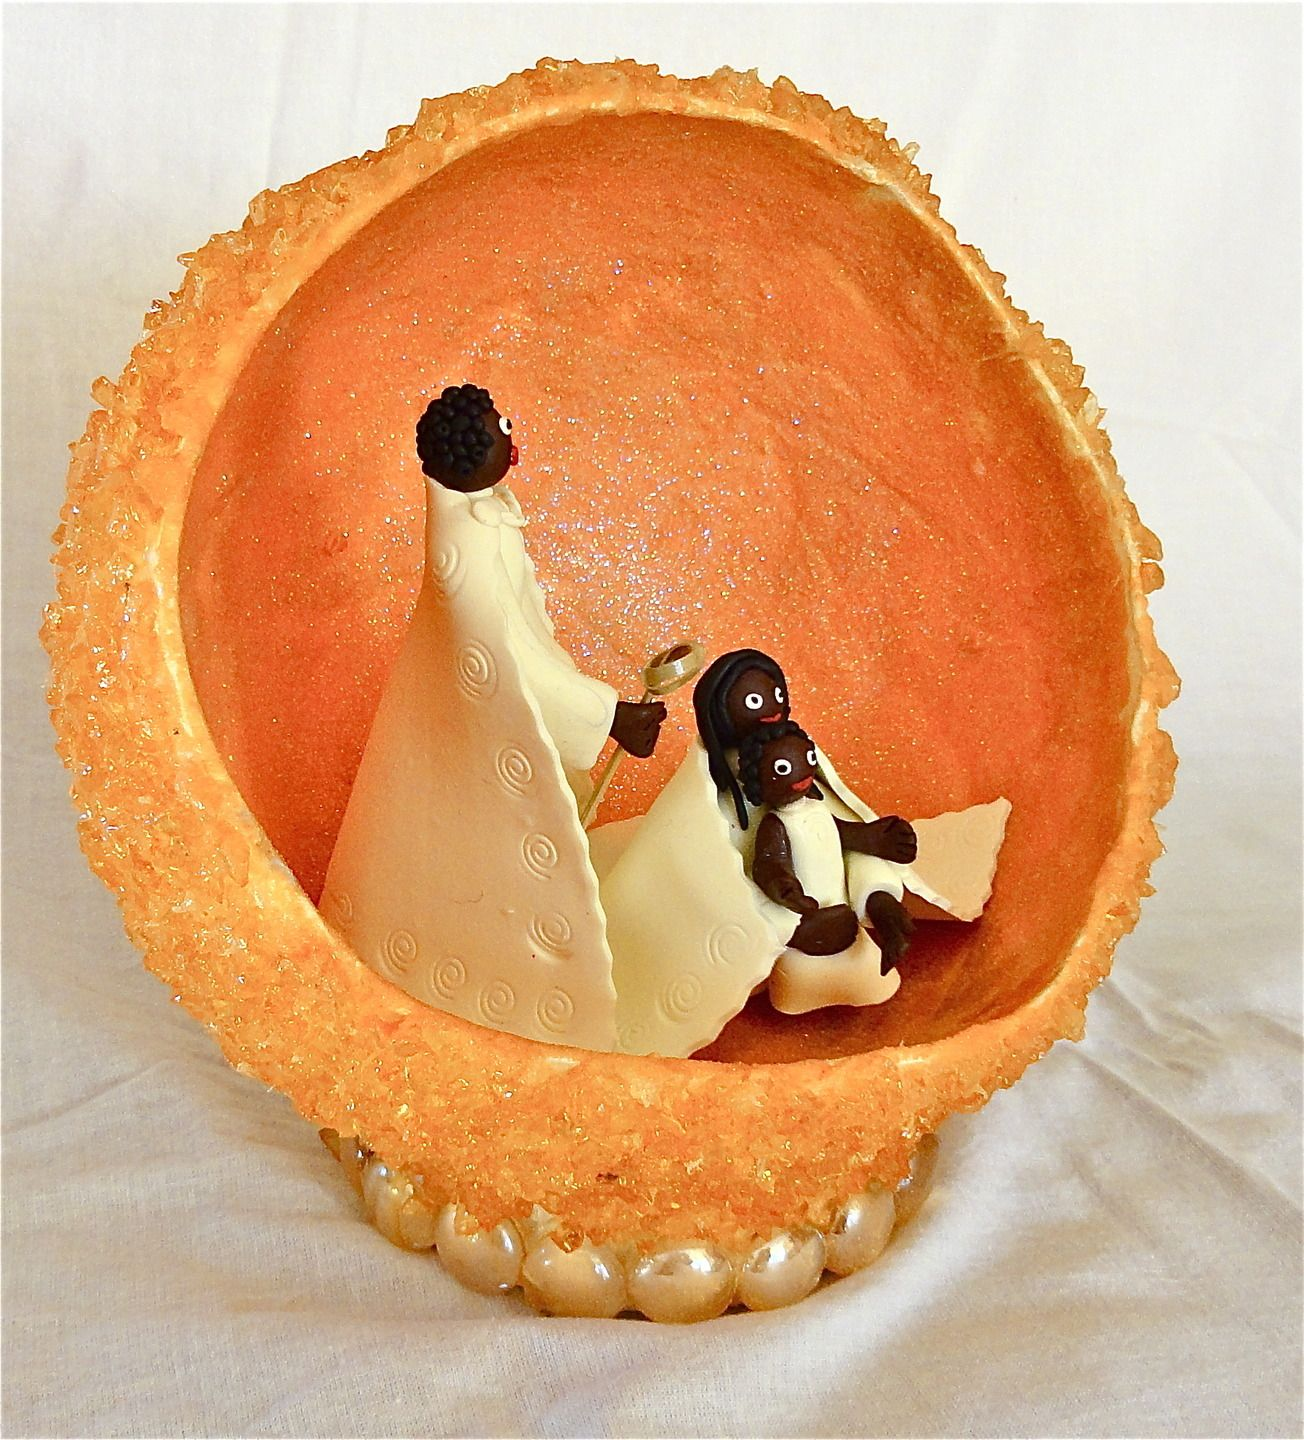 african nativity scene clay creche de noel africaine argile polym re orange et blanc cr ches. Black Bedroom Furniture Sets. Home Design Ideas